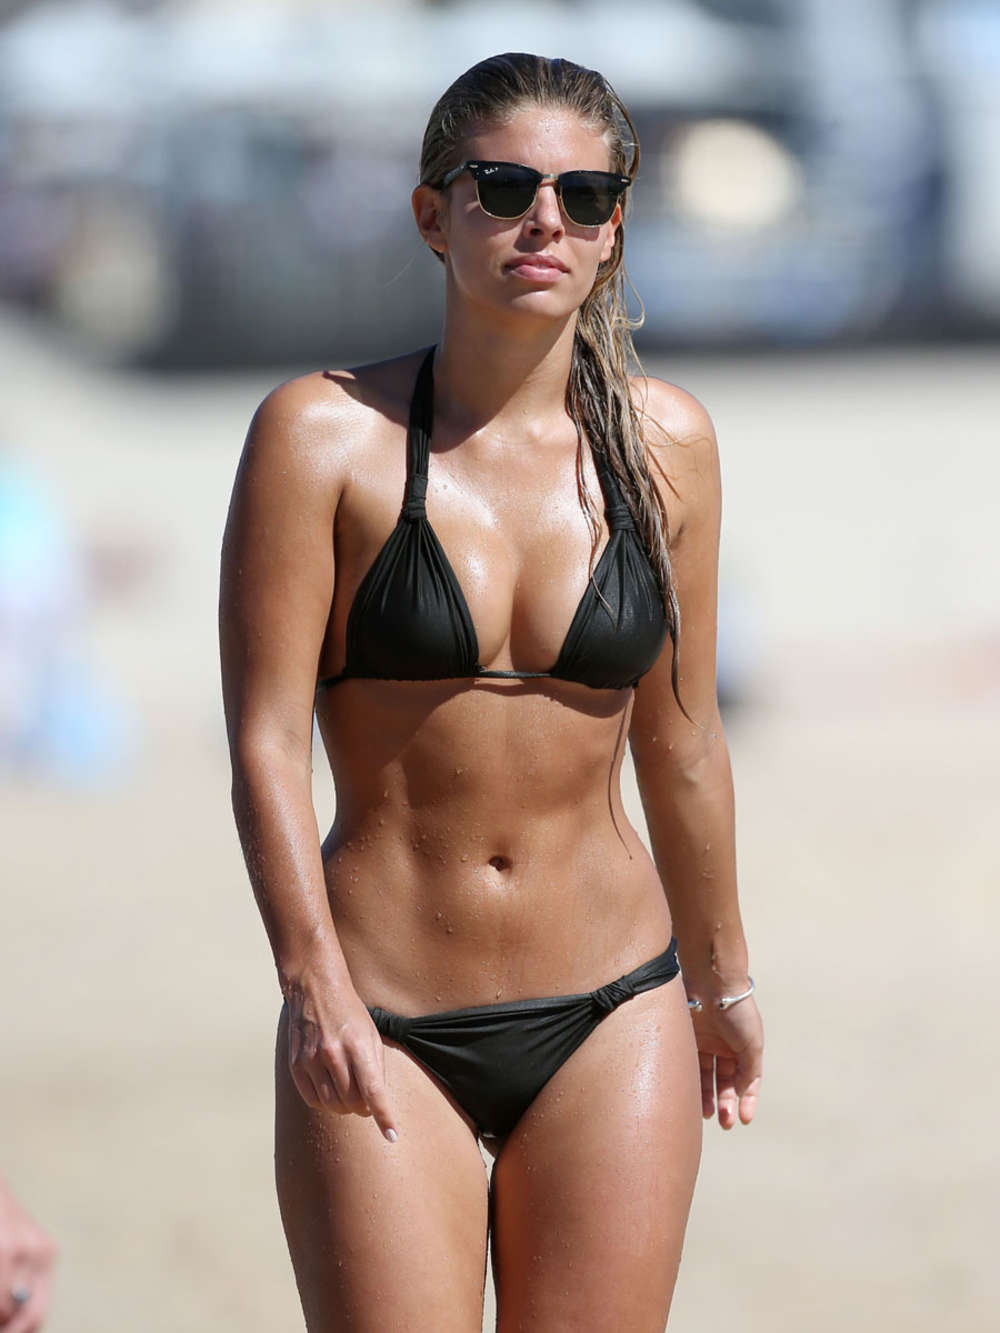 Natasha Oakley Bikini Photos  2014 Sydney -15 - Full SizeNatasha Oakley Hot